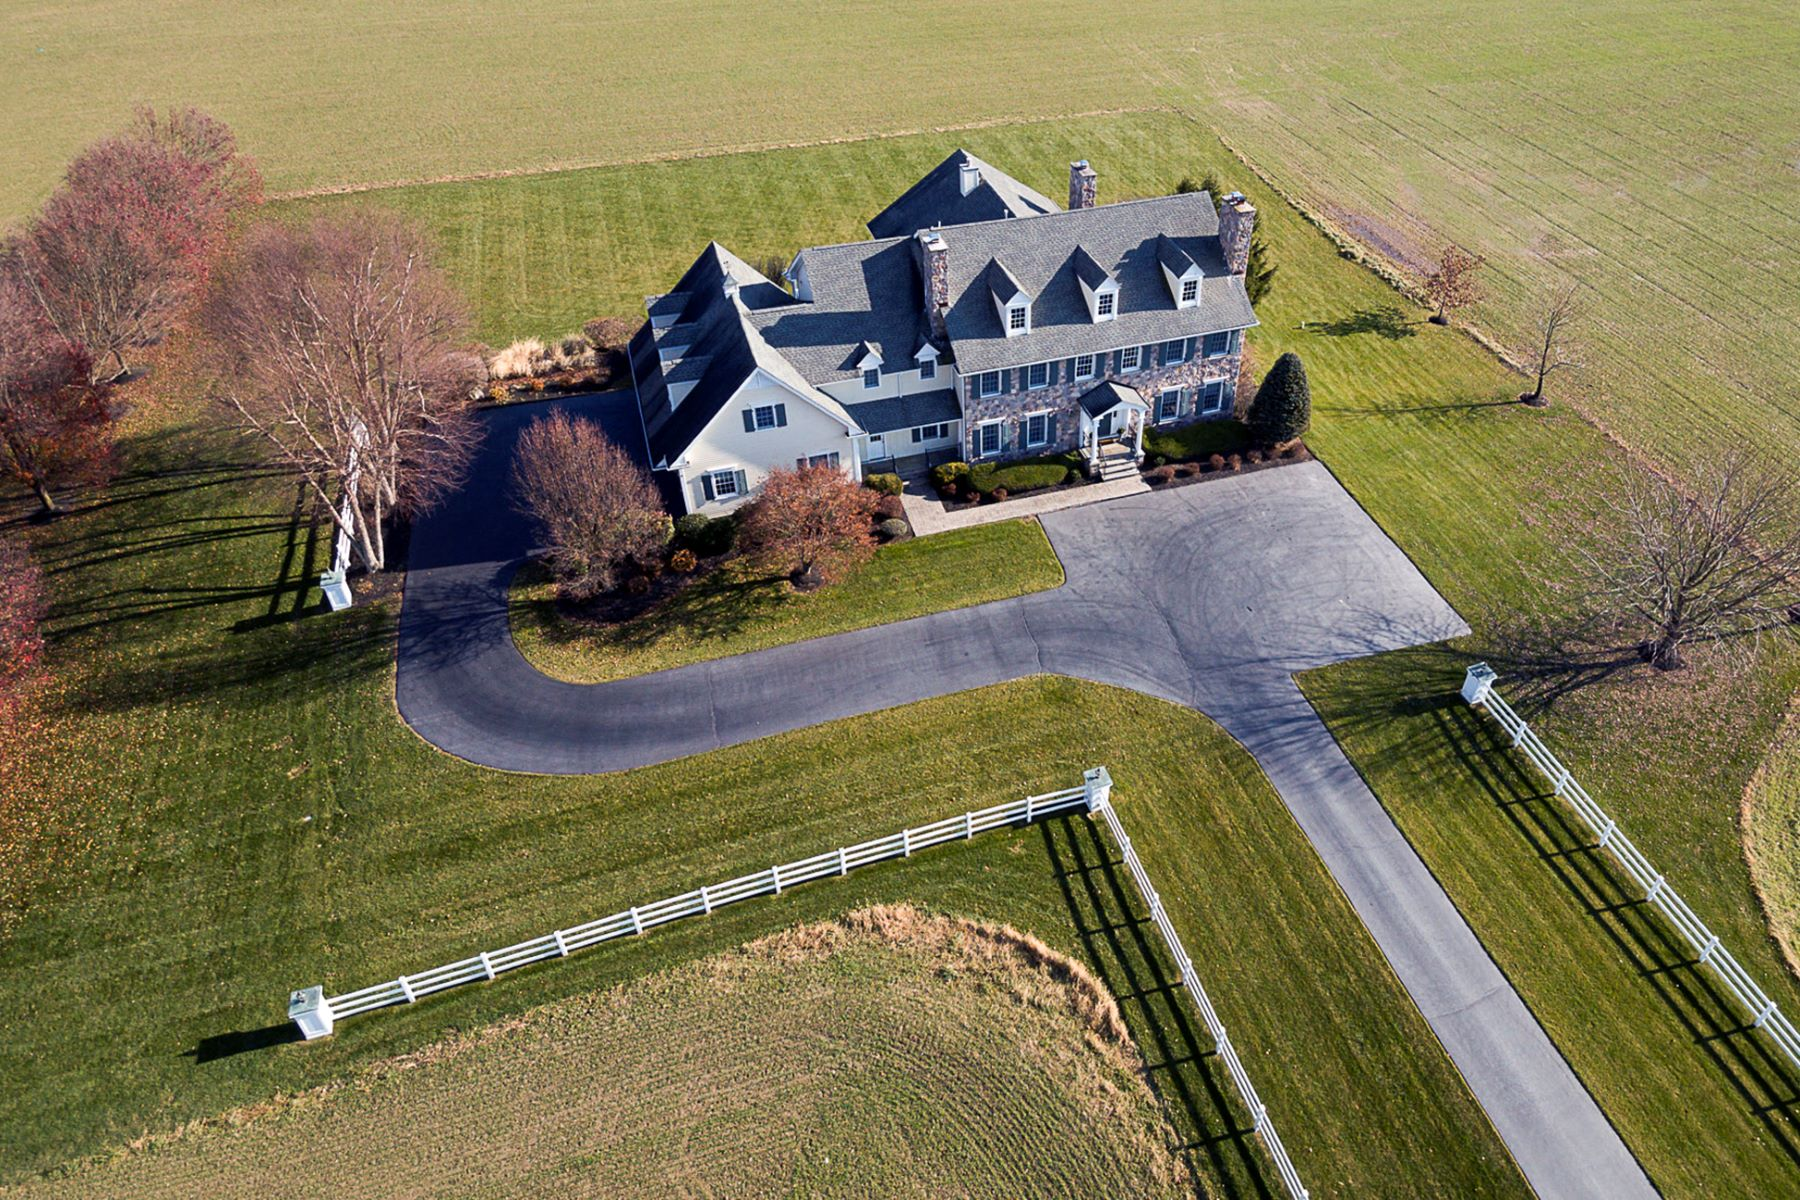 Casa Unifamiliar por un Venta en All The Pleasures Of Refined Country Living 81 Petty Road, Cranbury, Nueva Jersey 08512 Estados UnidosEn/Alrededor: Cranbury Township